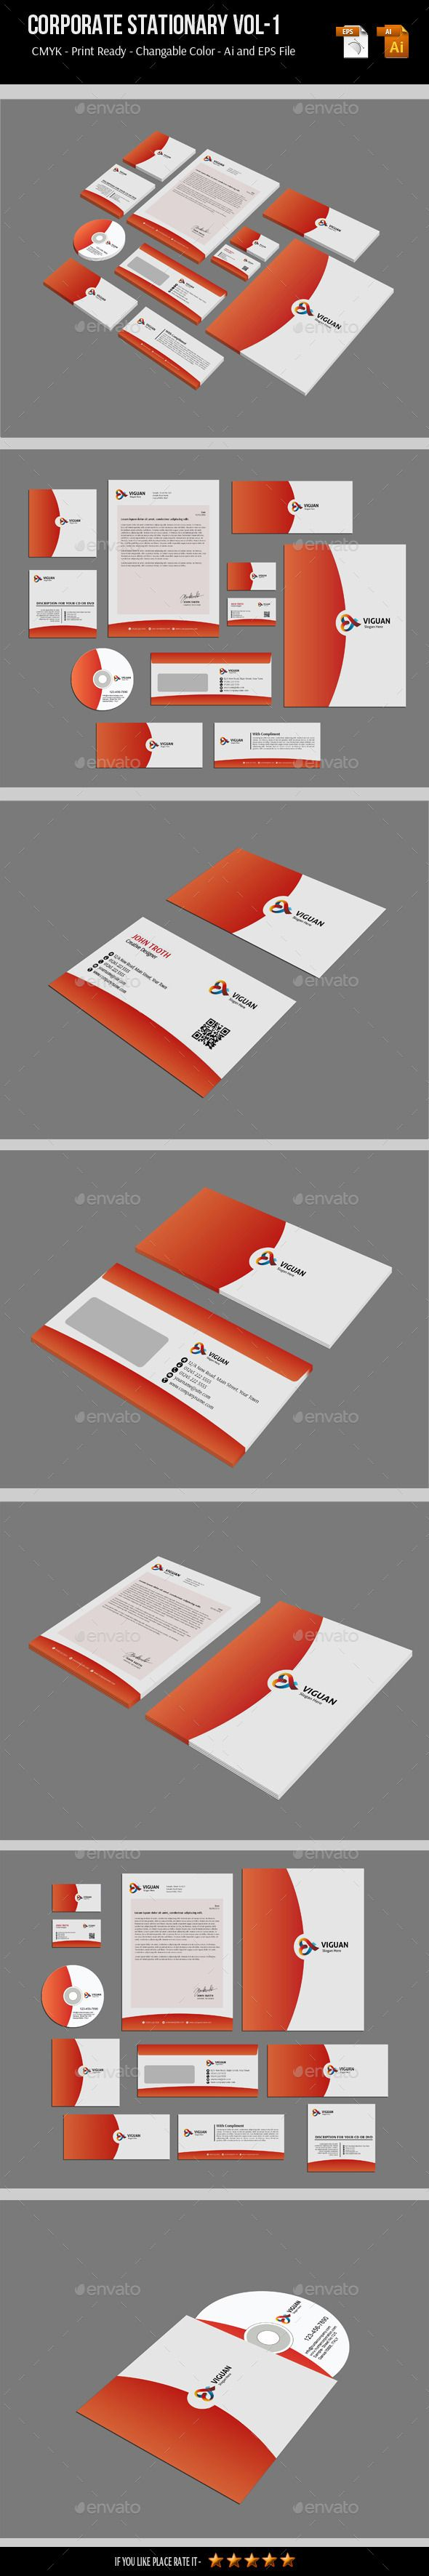 Corporate Stationary Vol-1 - #Stationery Print Templates Download here: https://graphicriver.net/item/corporate-stationary-vol1/7200802?ref=alena994